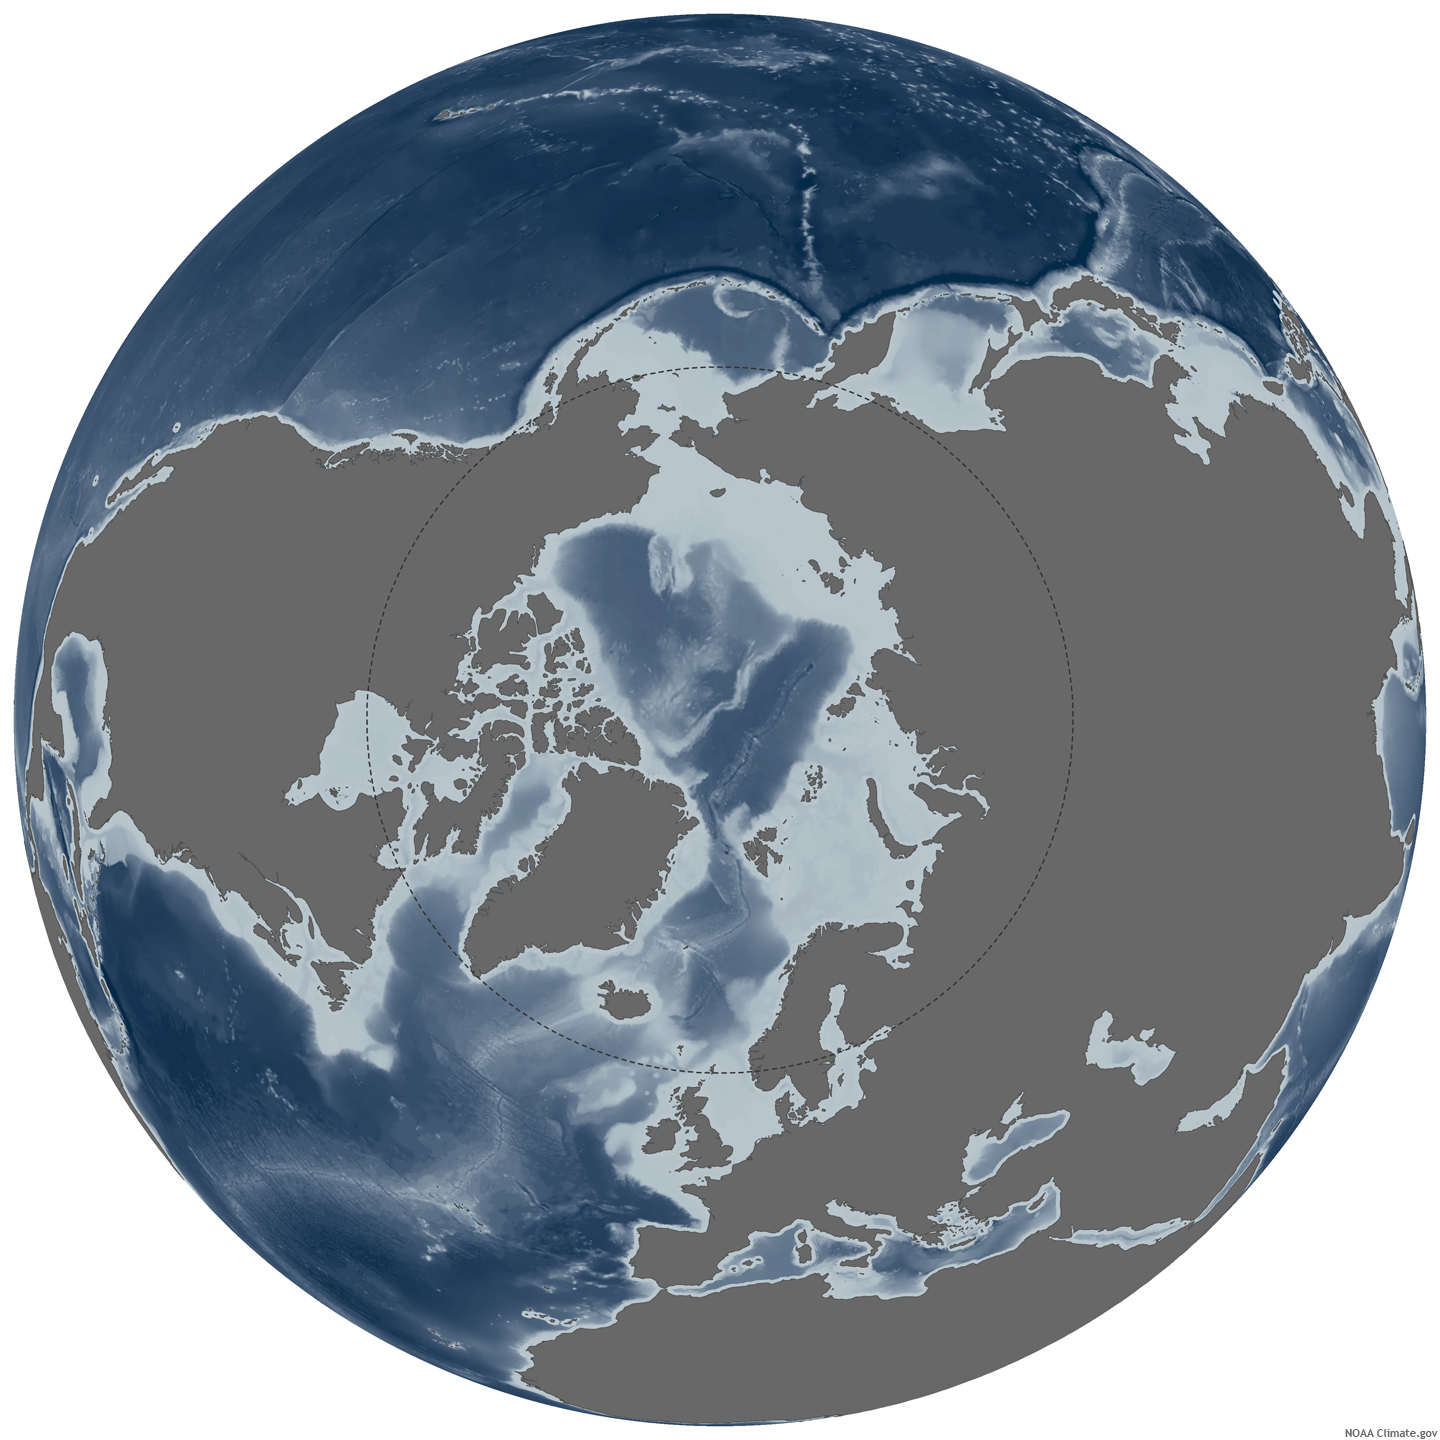 Caption: ,Map based on NSIDC sea ice extent data. , Credit: Climate.gov